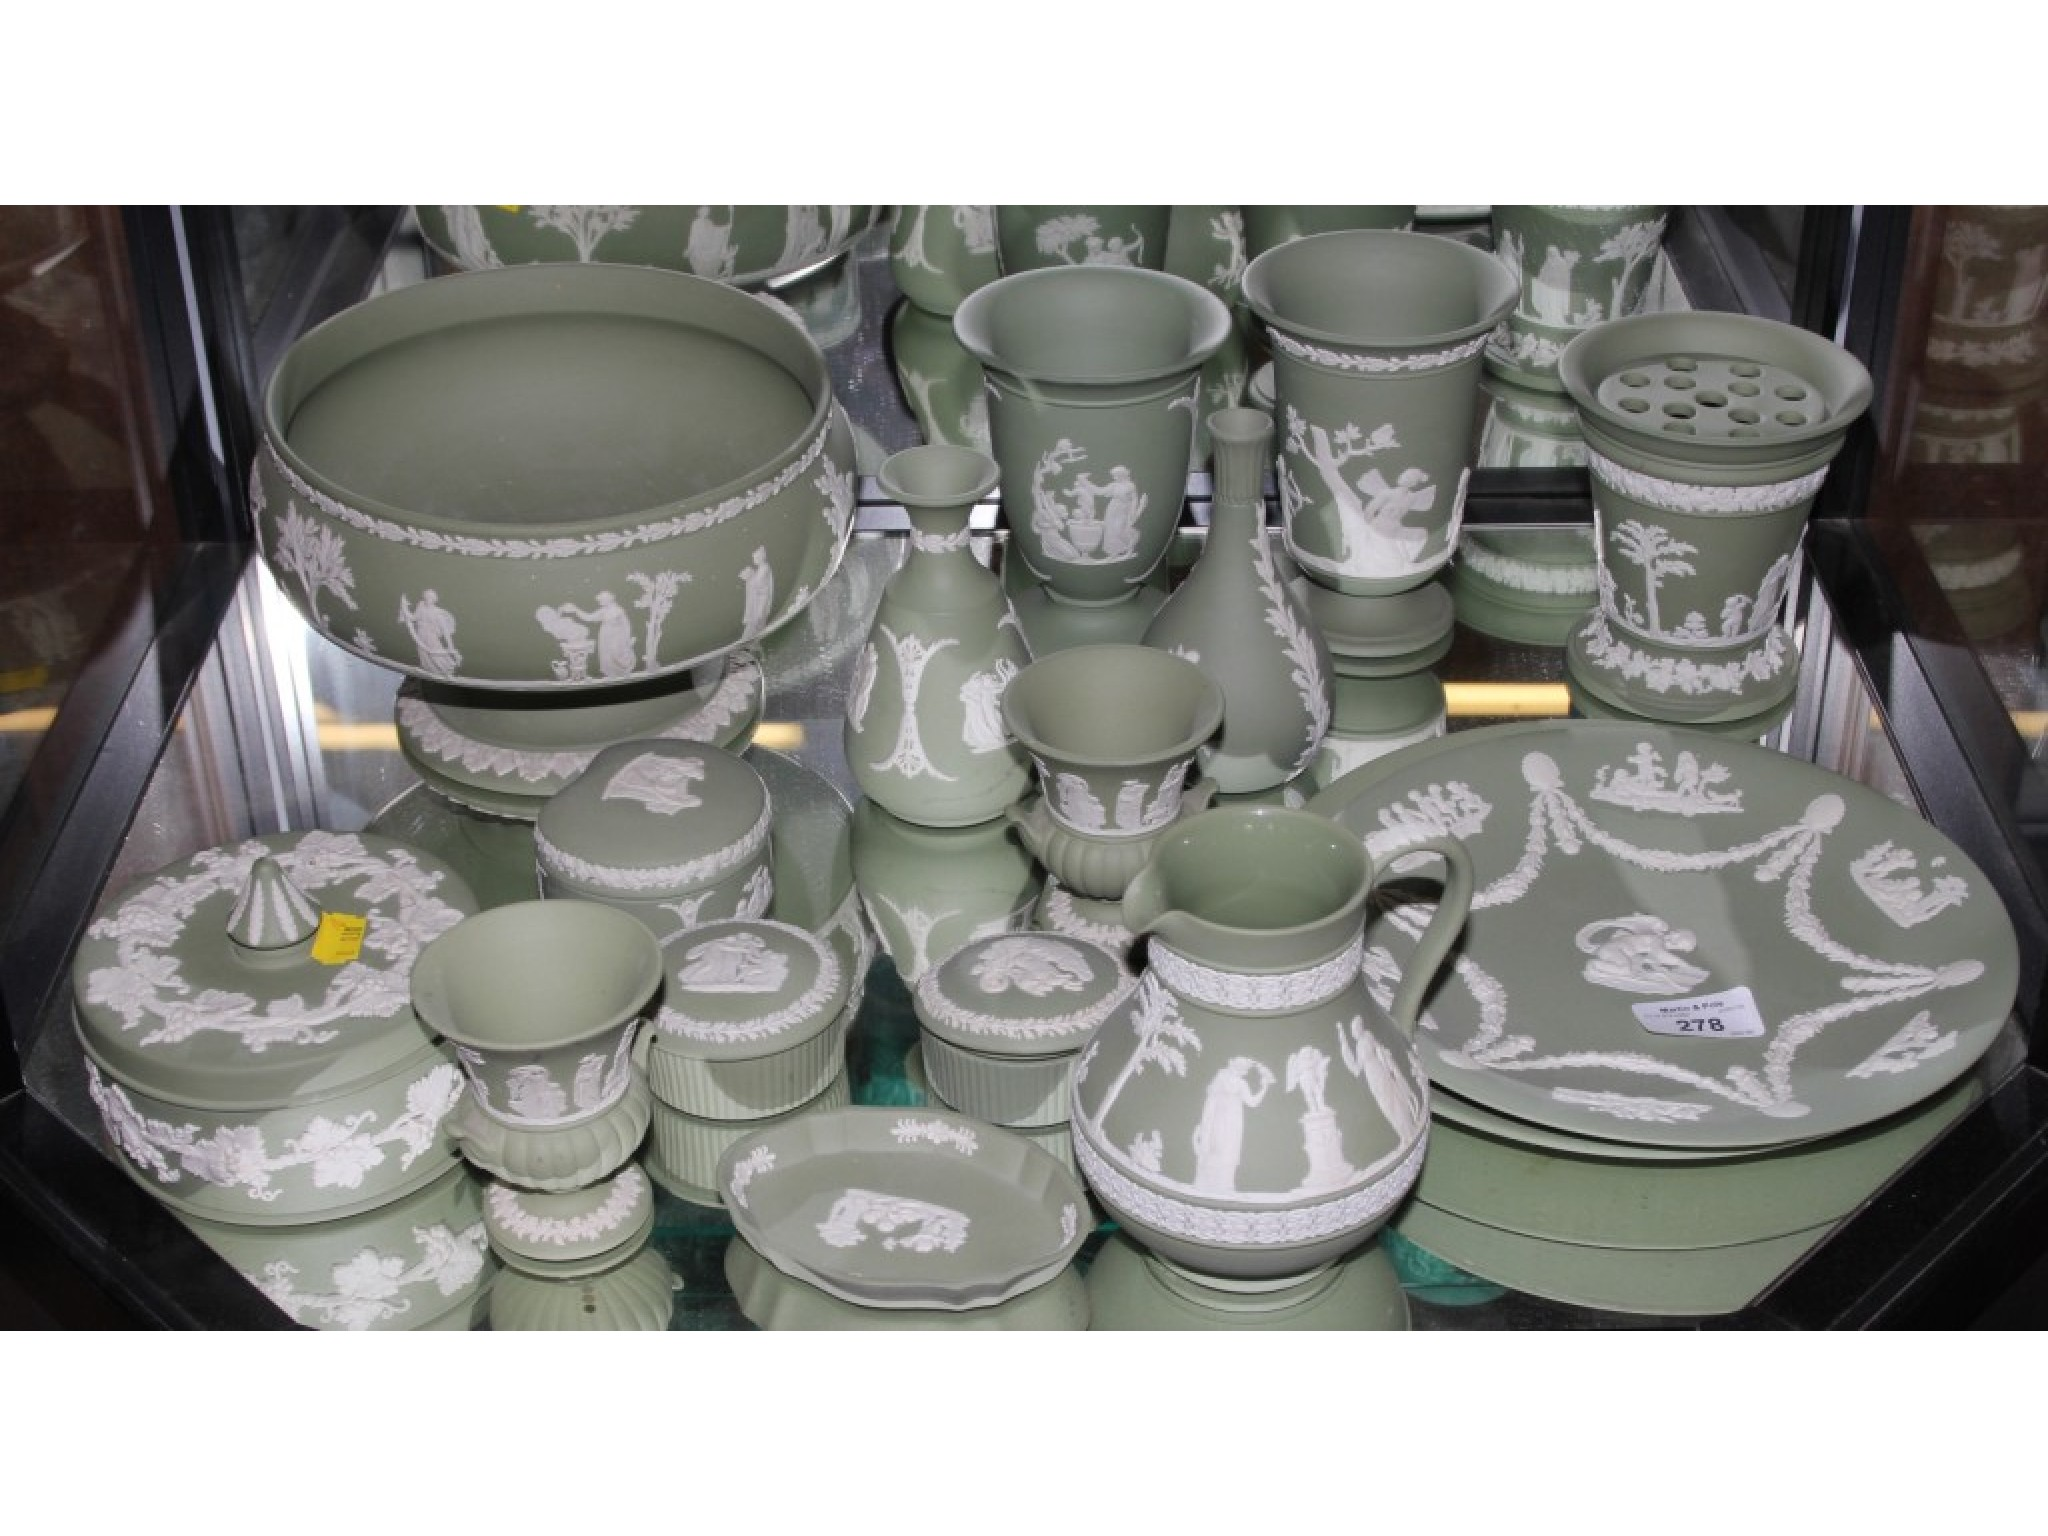 A collection of green Wedgwood Jasperwares